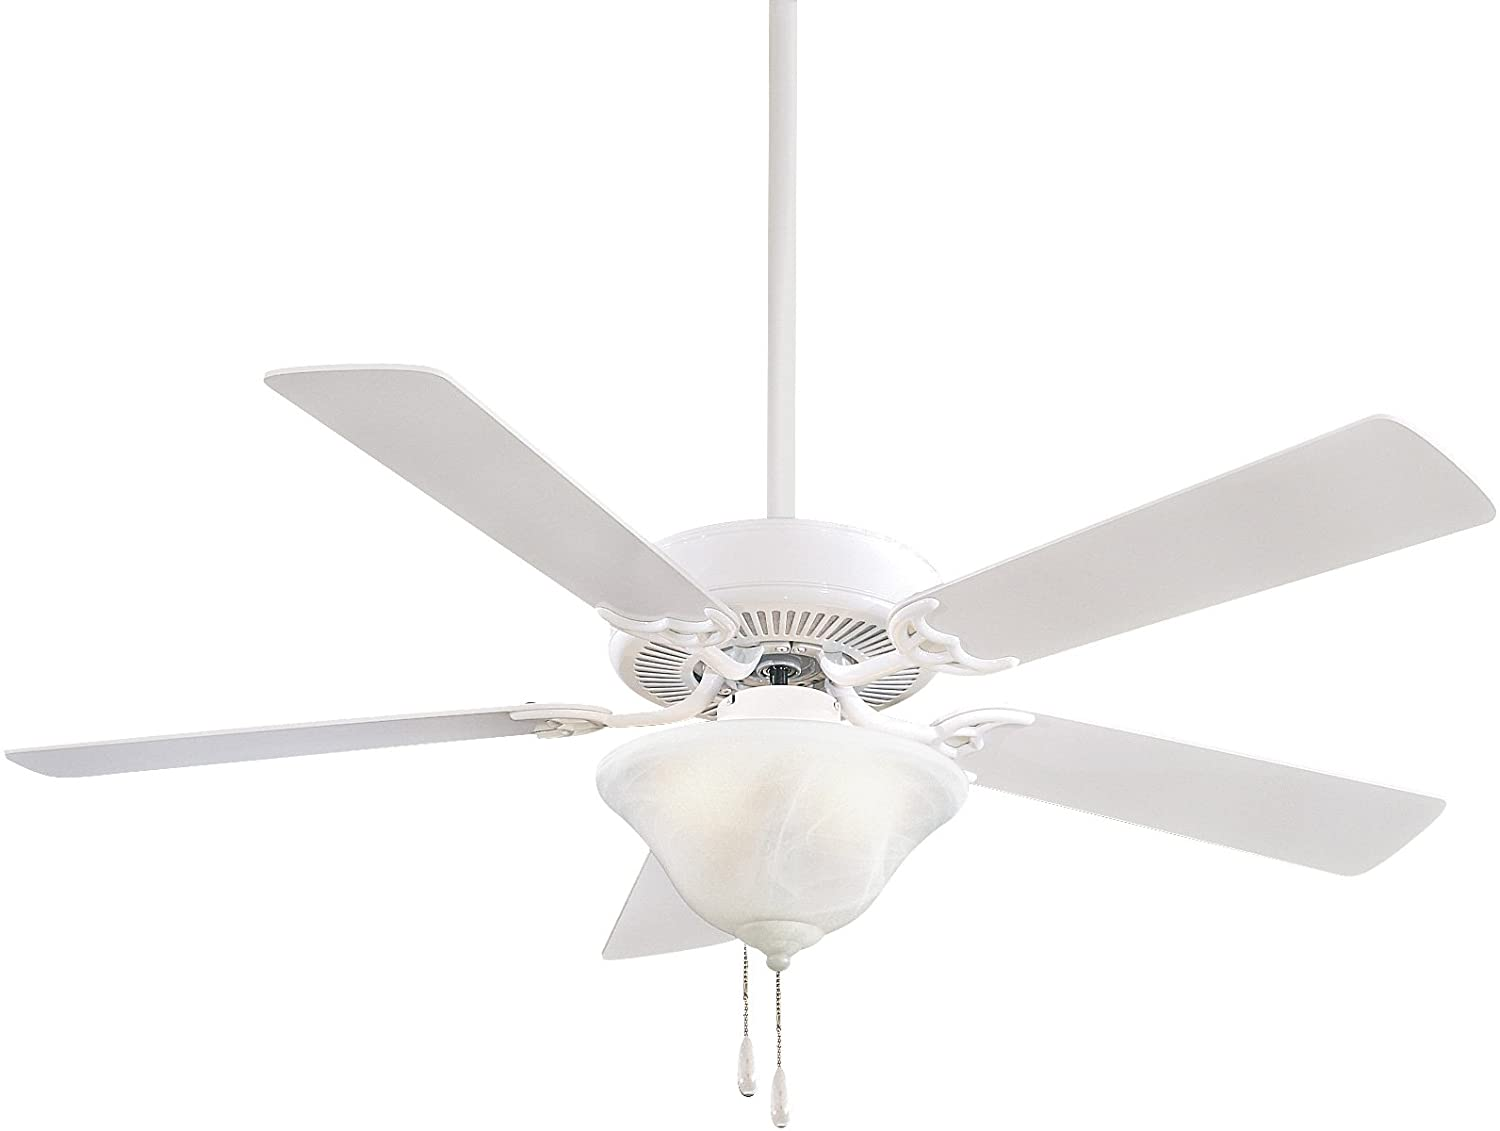 Minka-Aire F548-WH, Contractor Uni-Pack, 52 Ceiling Fan, White